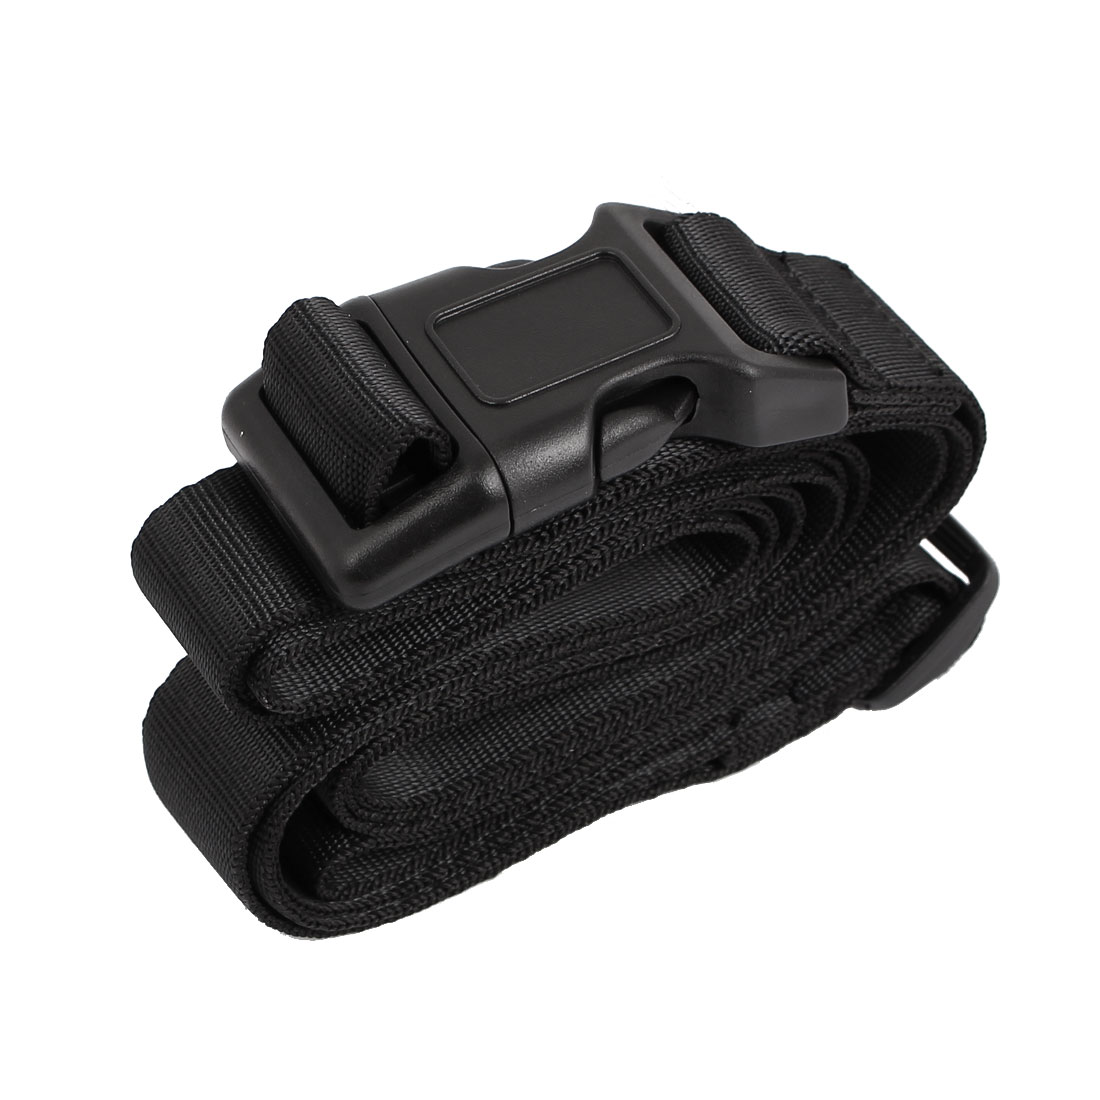 Quick Release Buckle Luggage Suitcase Backpack Baggage Adjustable Belt Strap Black 2M x 25mm